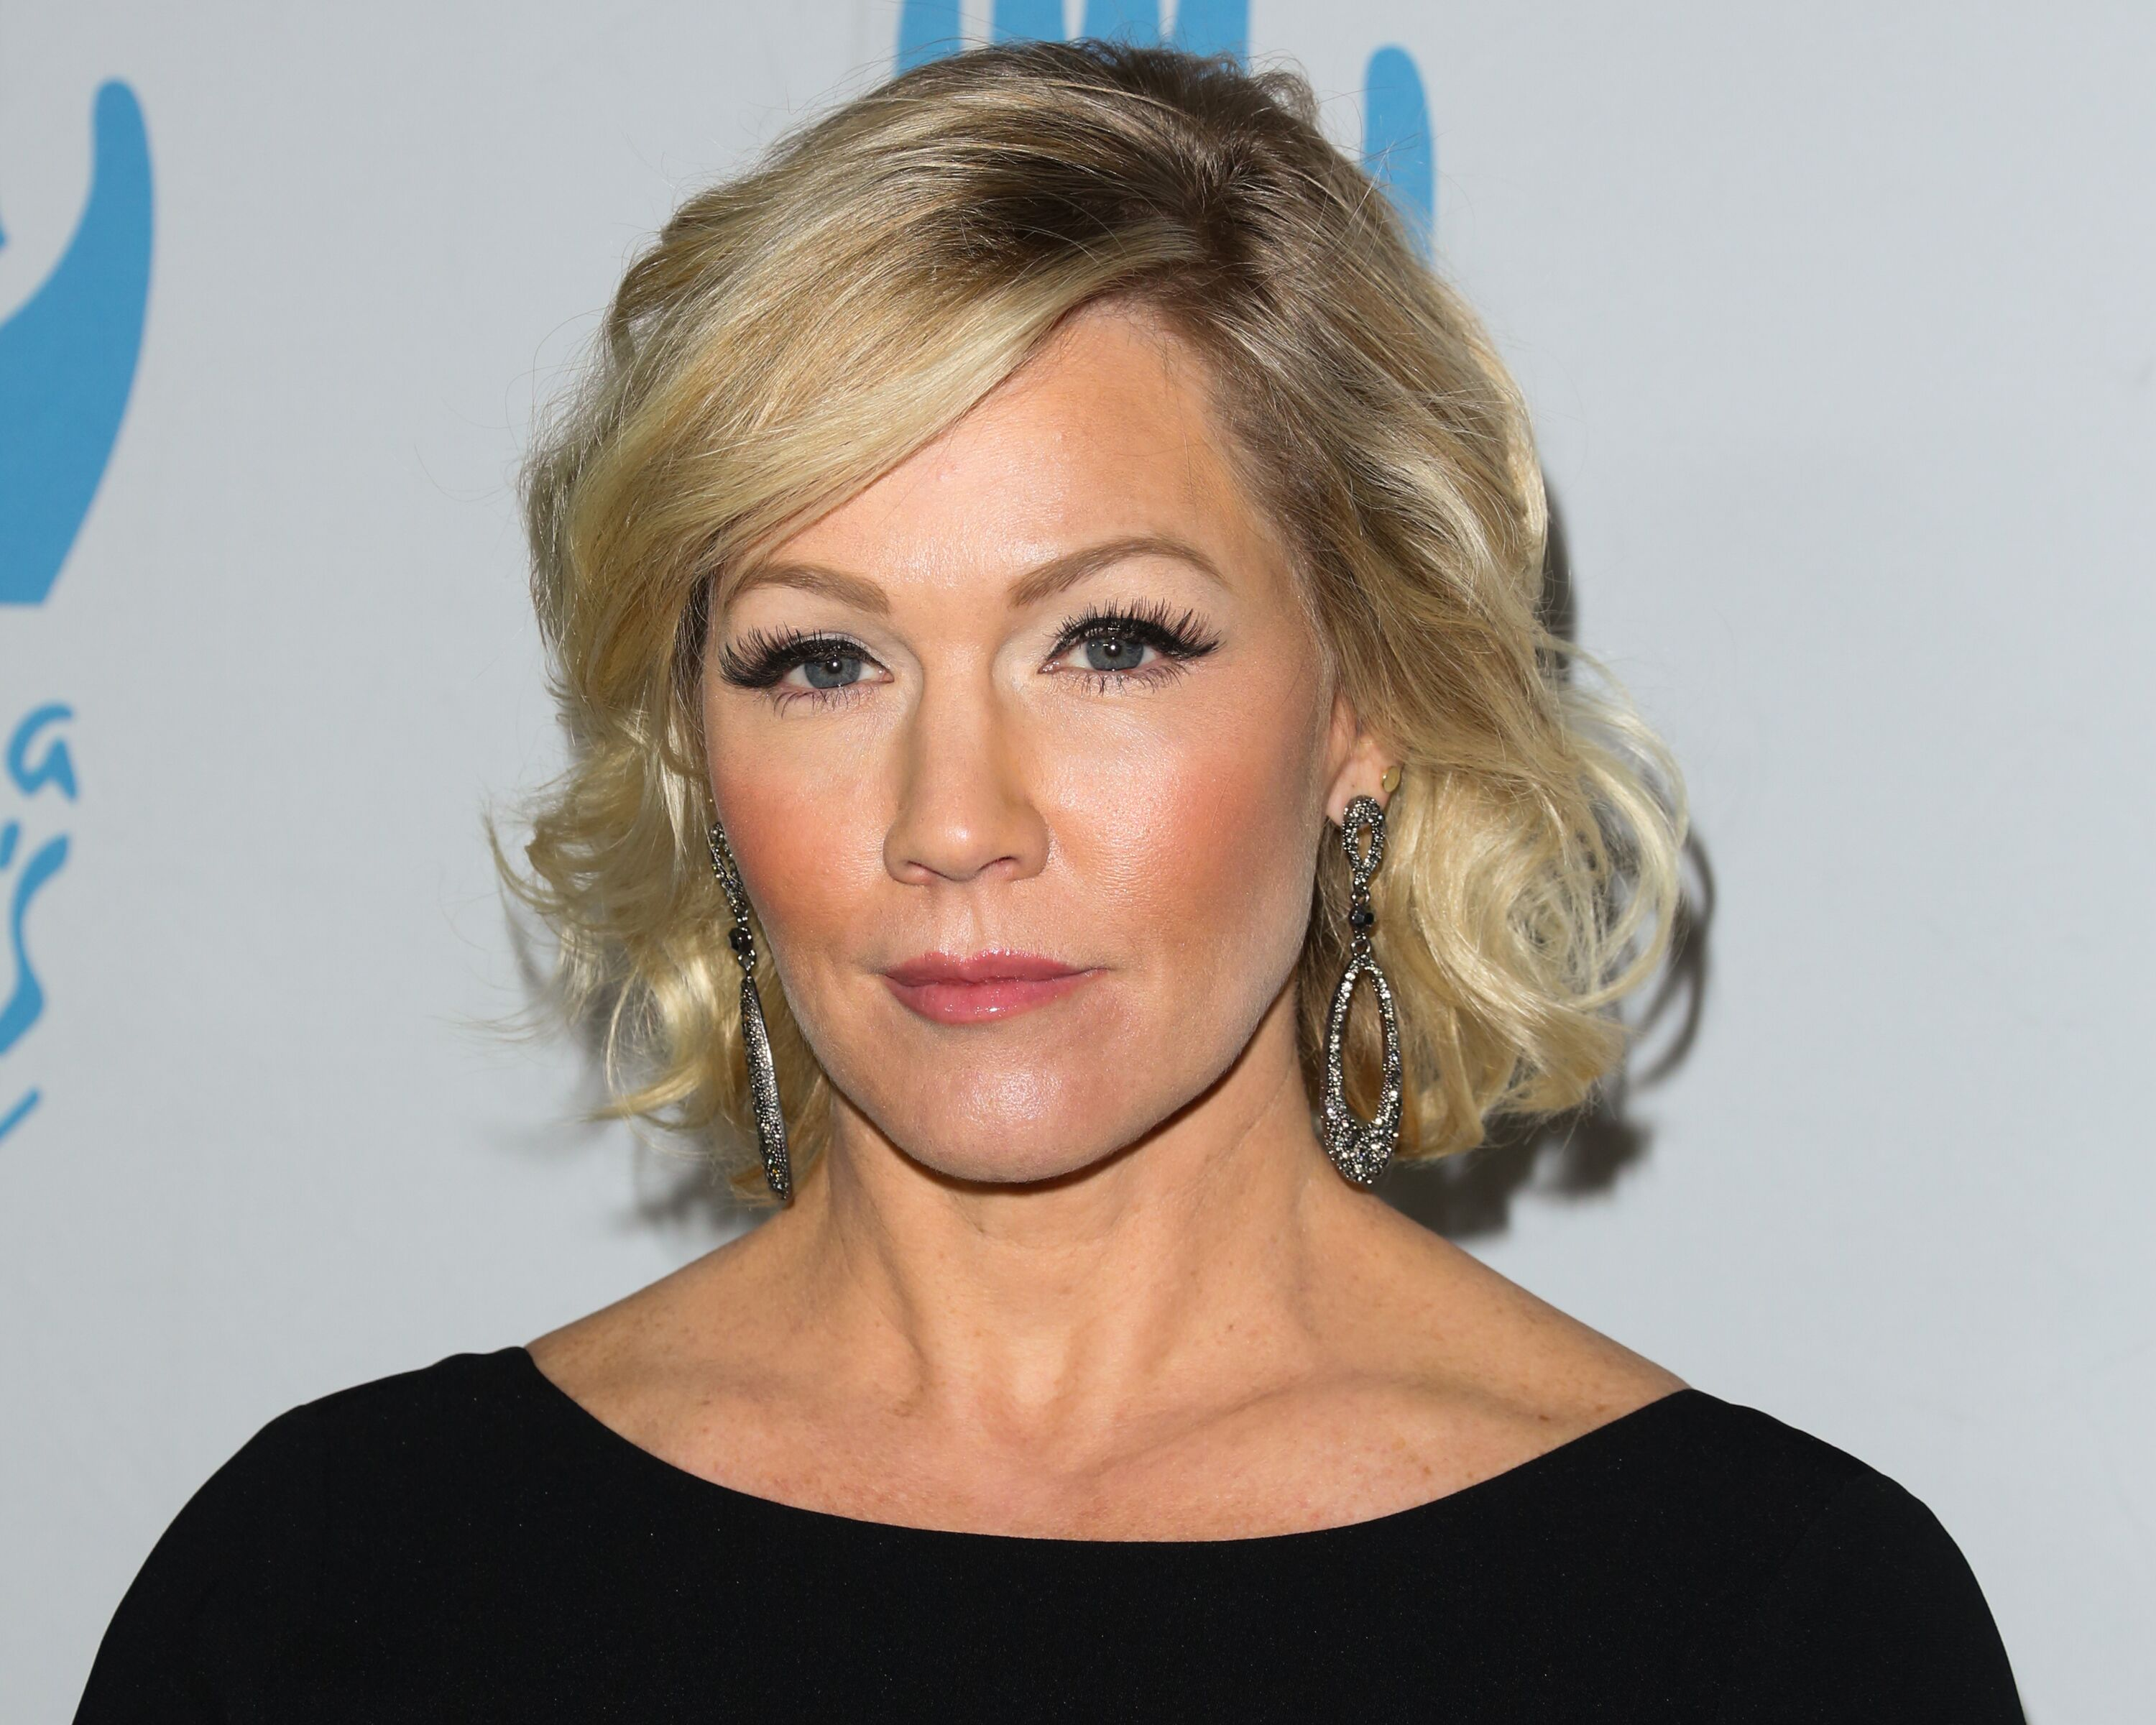 Jennie Garth attends the 2nd Annual Save A Child's Heart Gala. | Source: Getty Images